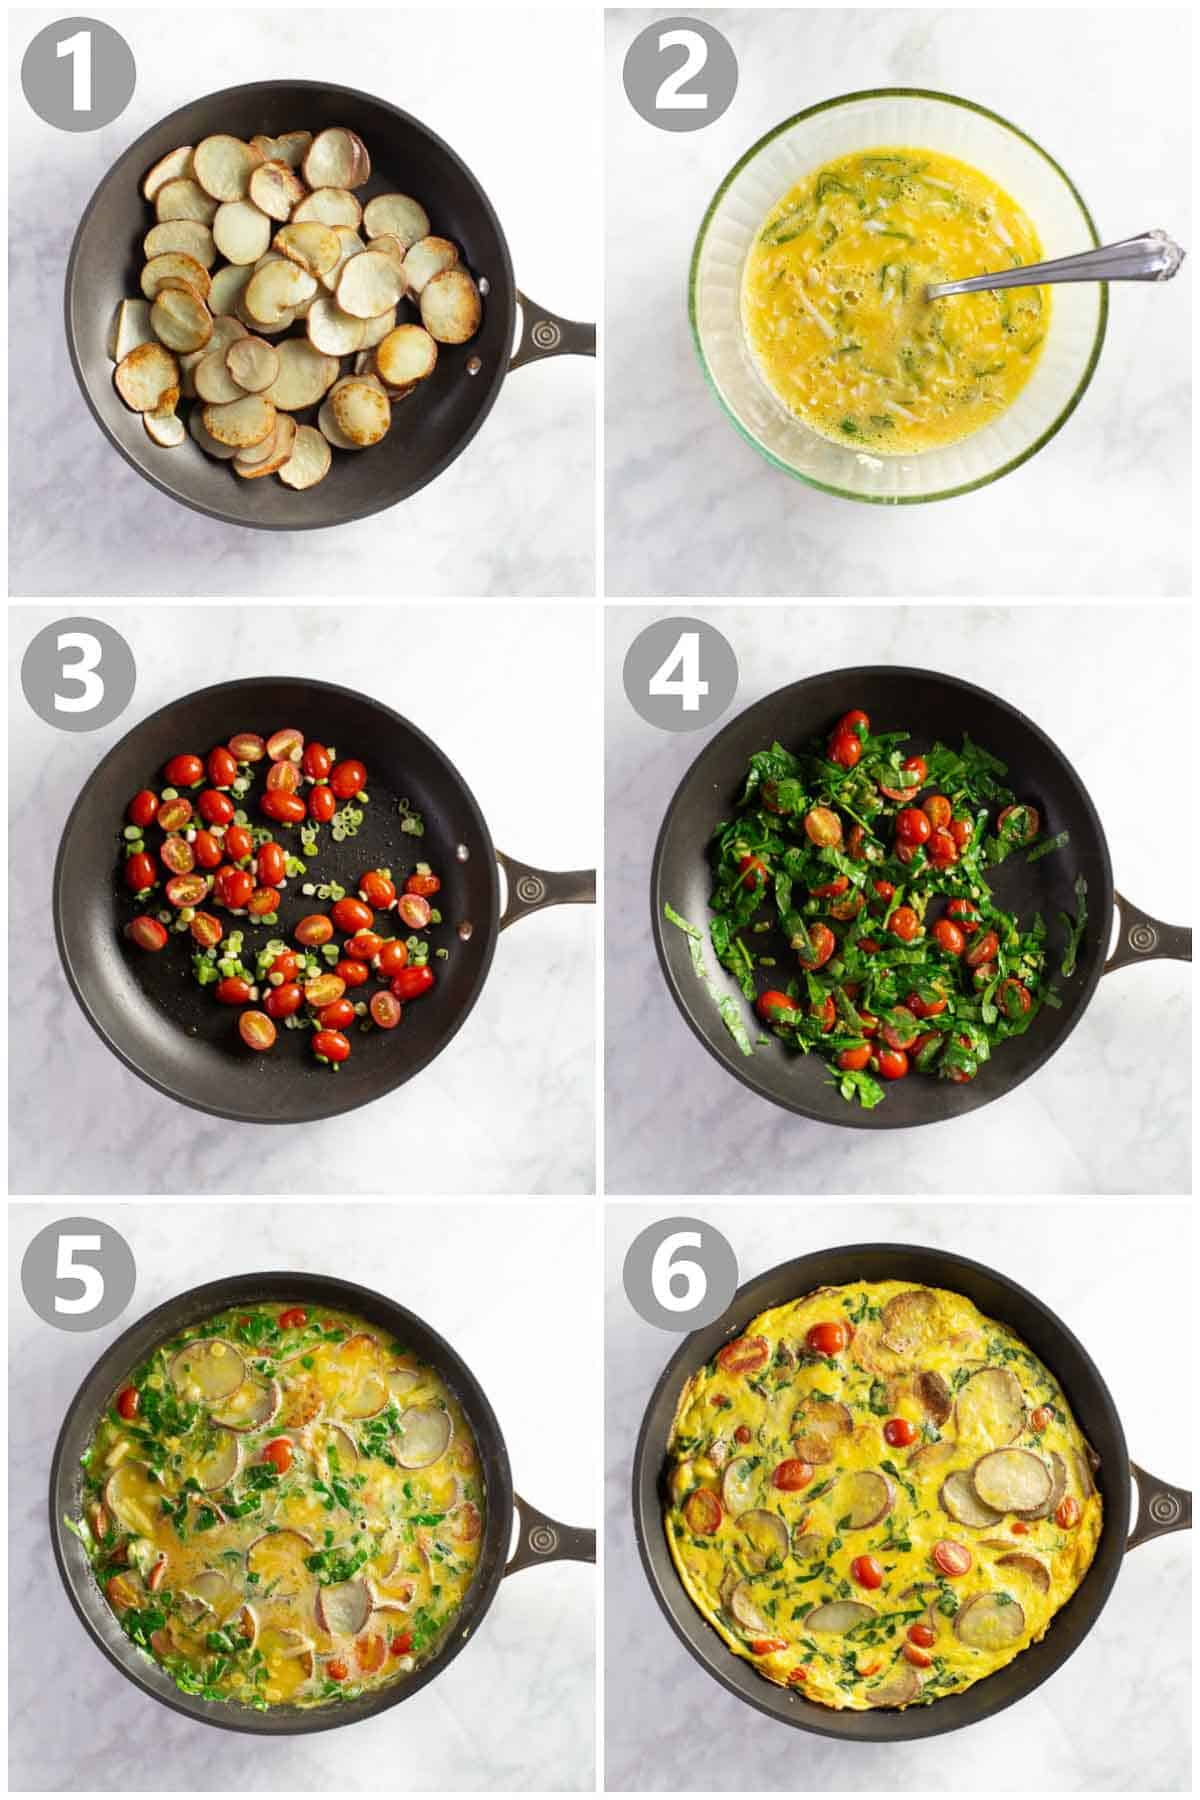 6 step by step photos show how to make a baked egg dish